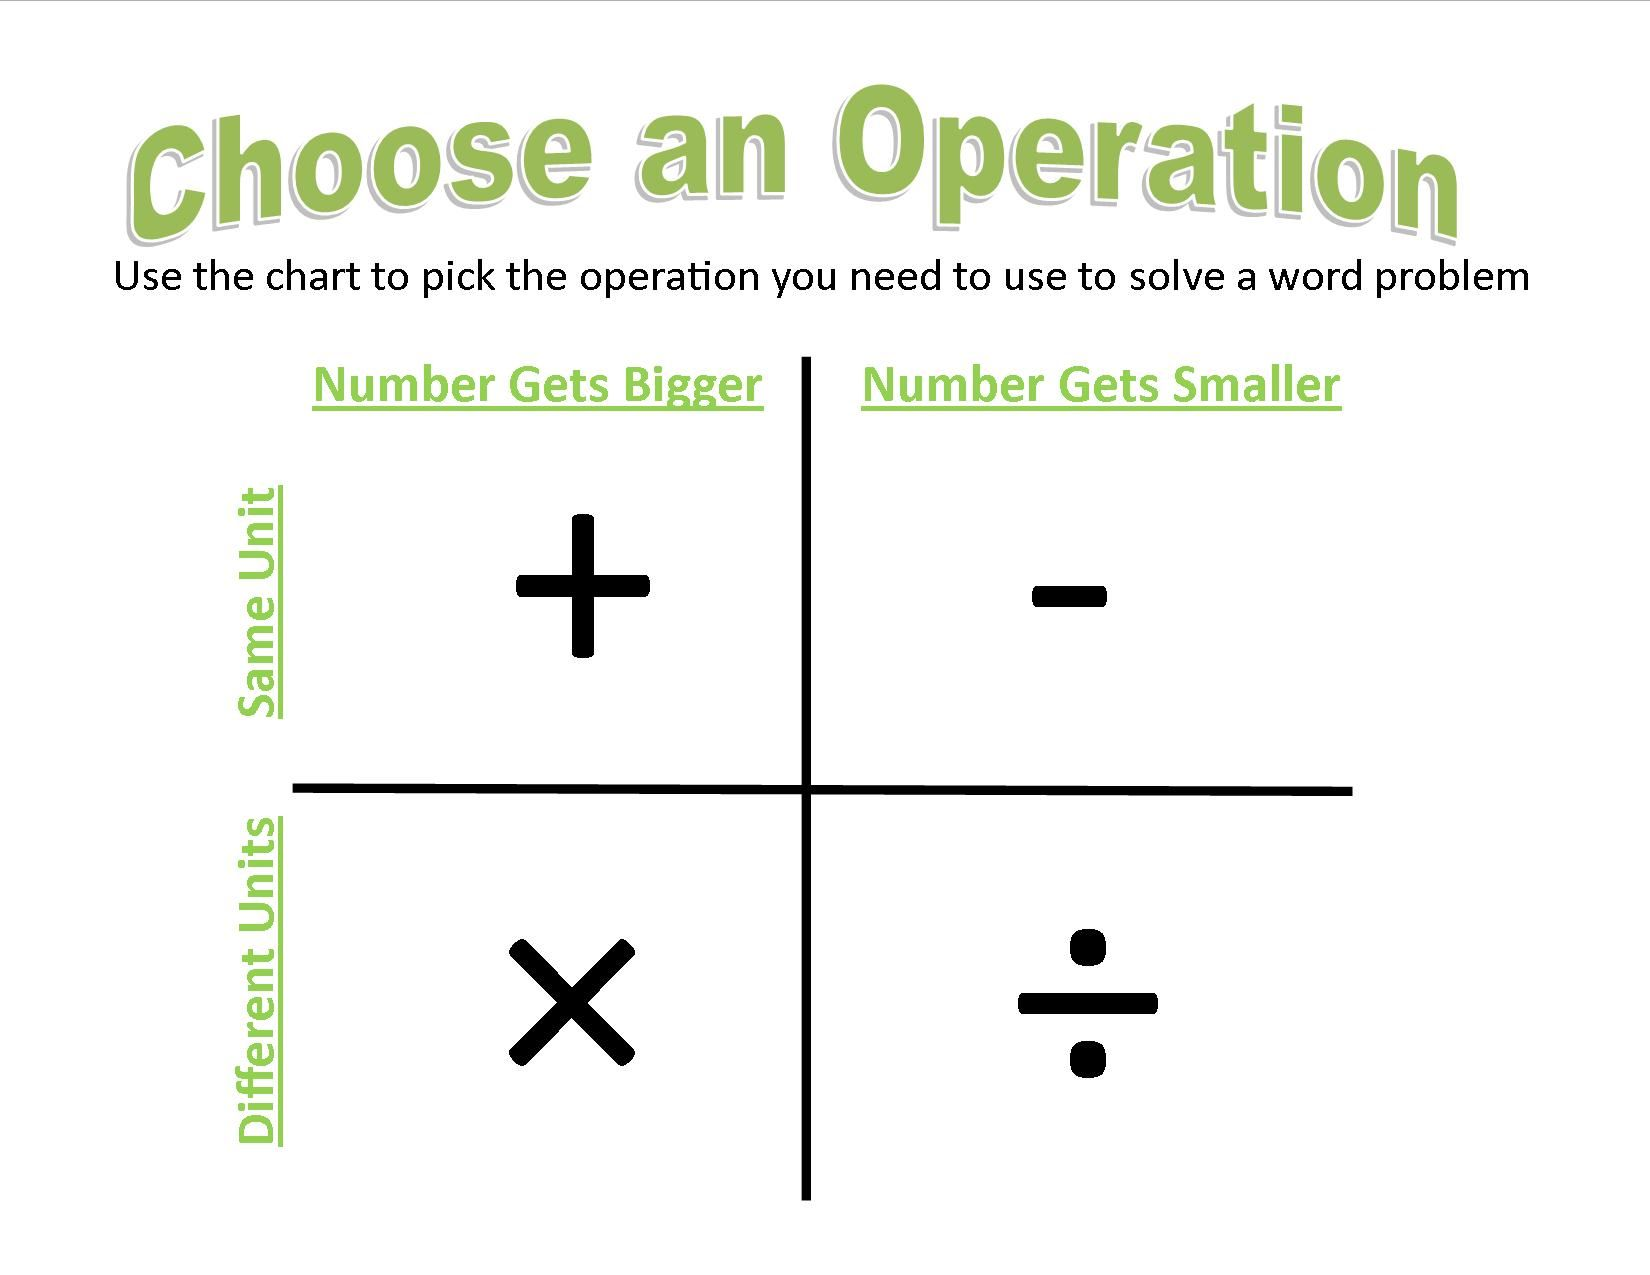 A Visual Alternative To Choosing An Operation For Word